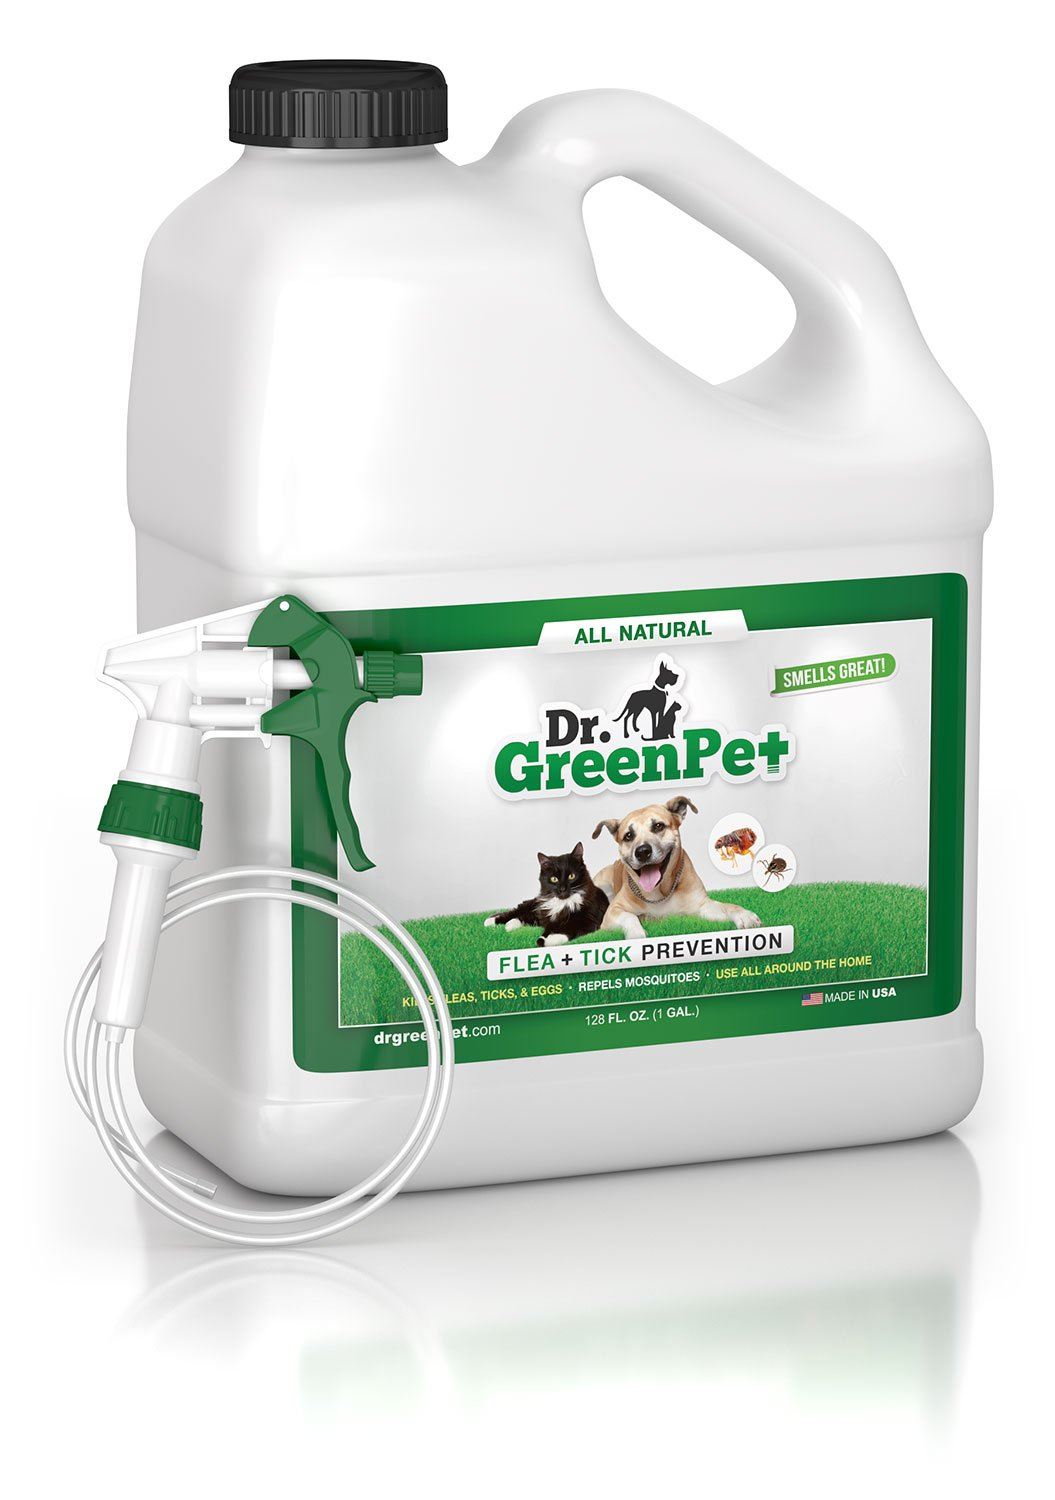 Dr. GreenPet All Natural Flea and Tick Prevention and Control Spray for Dogs and Cats - 1 Gallon - Smells Great! by Dr. GreenPet